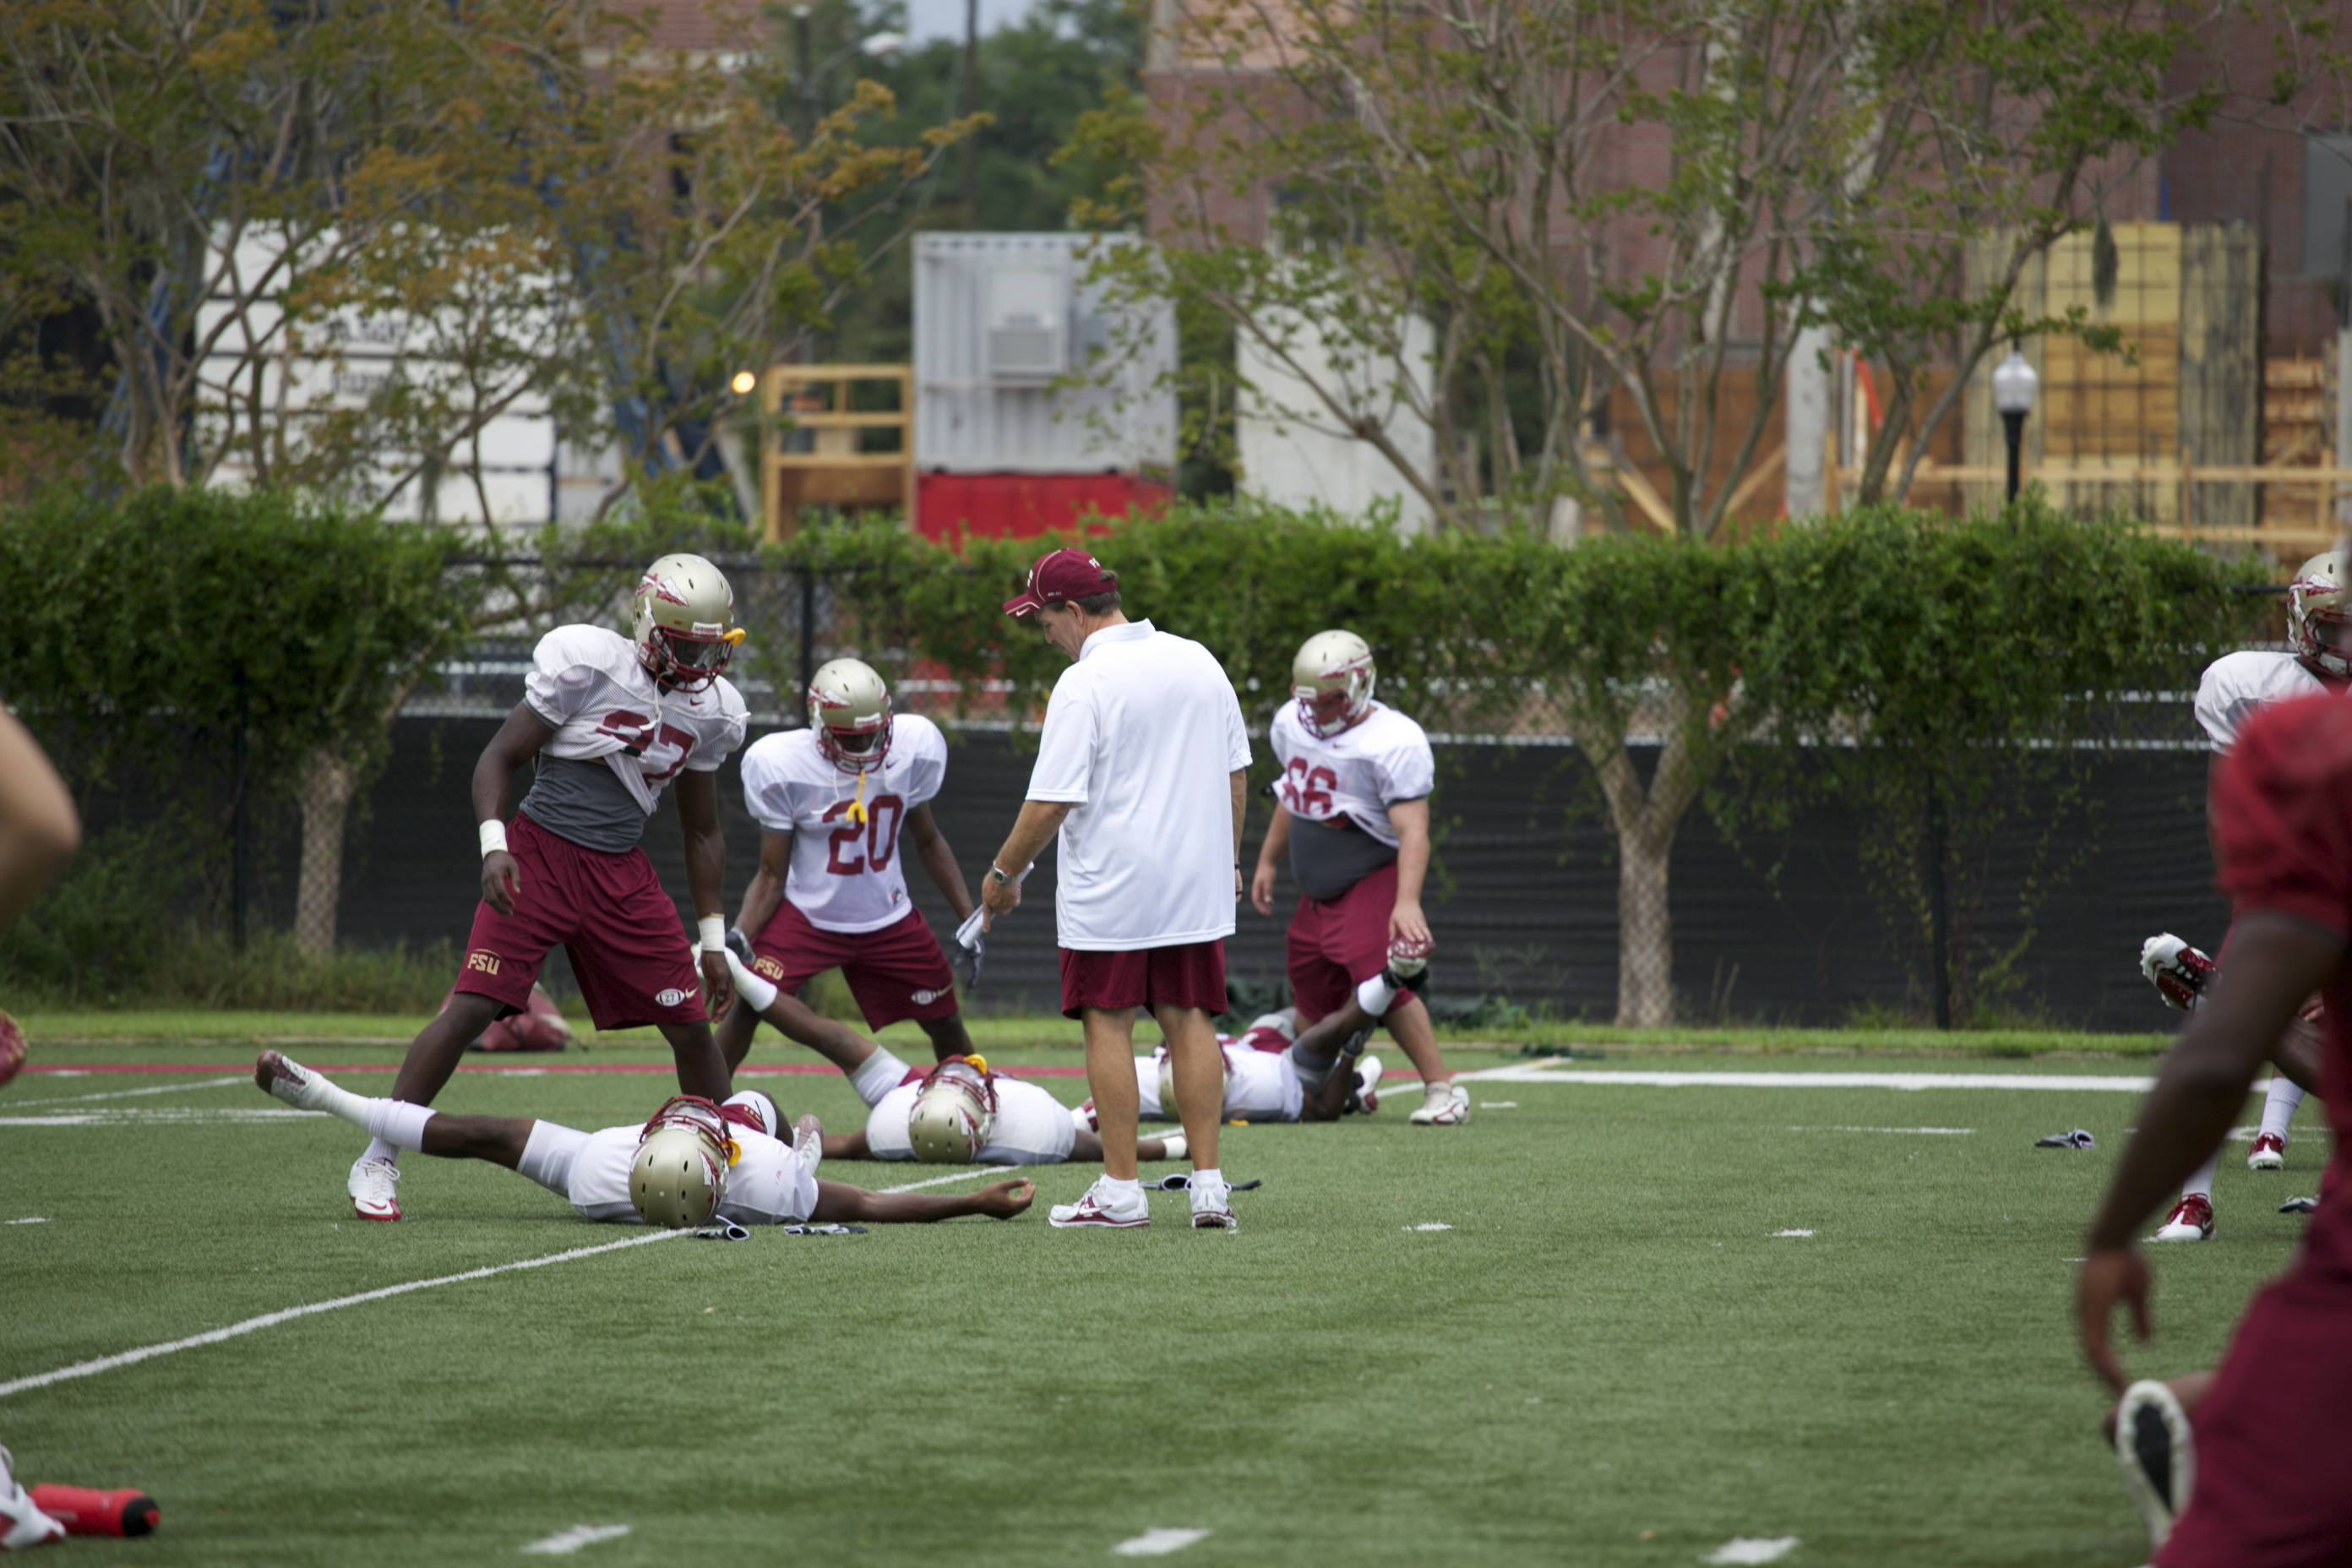 Coach Fisher helping the boys stretch before practice